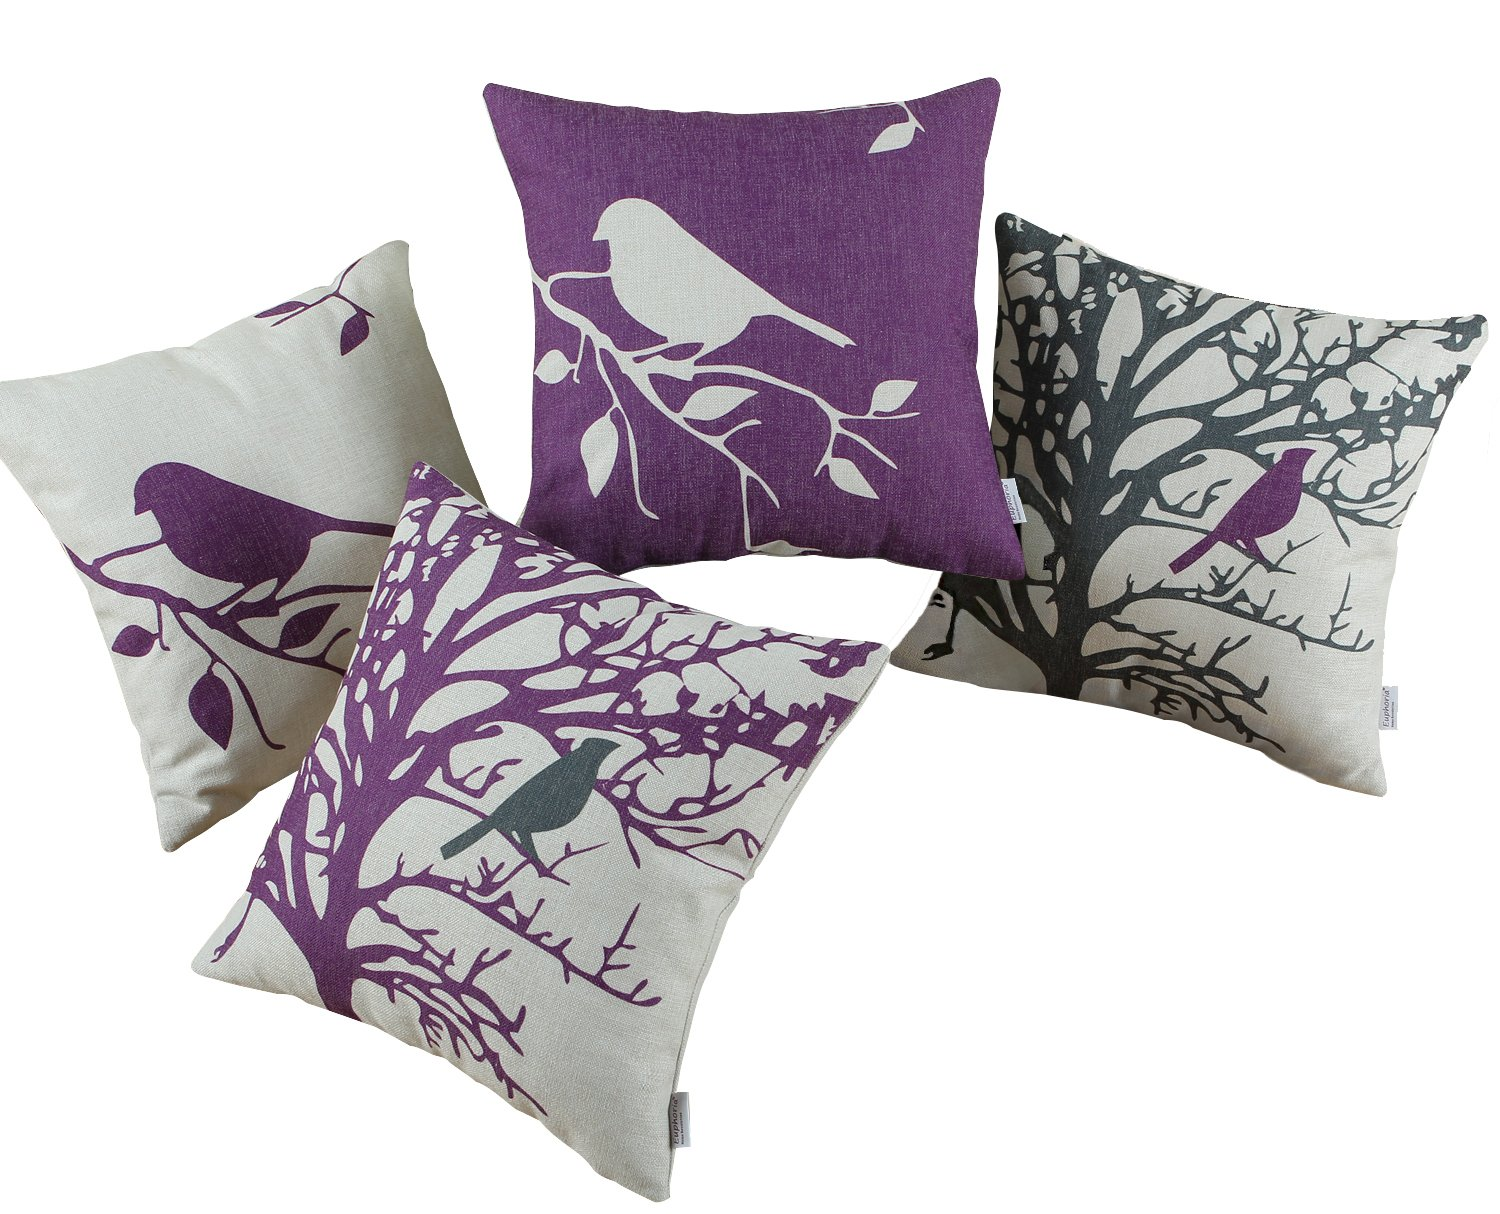 SET OF 4 Euphoria Home Decor Cushion Covers Pillows Shell Cotton Linen Blend Vintage Black Purple Bird Branches Tree Combo Set